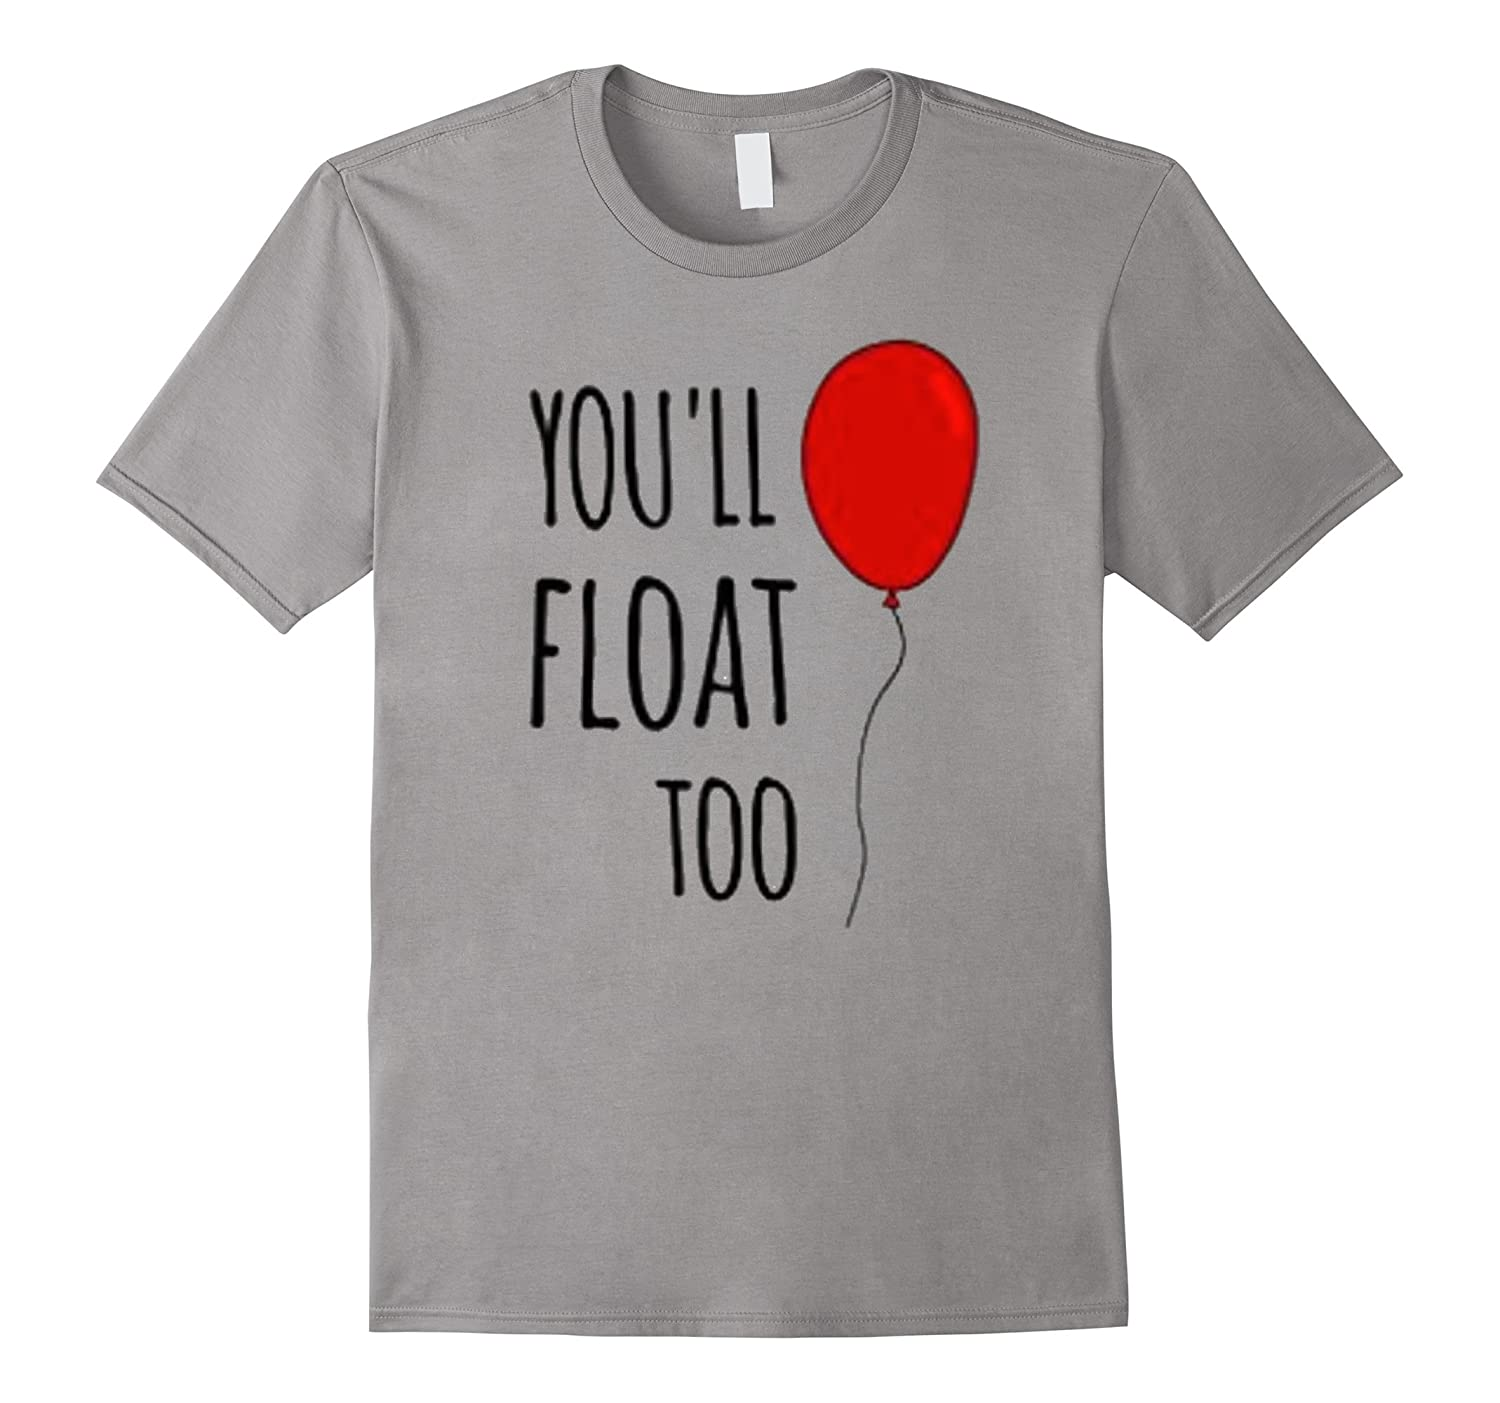 You'll float too red ballon t-shirt Horror Halloween Scary-FL